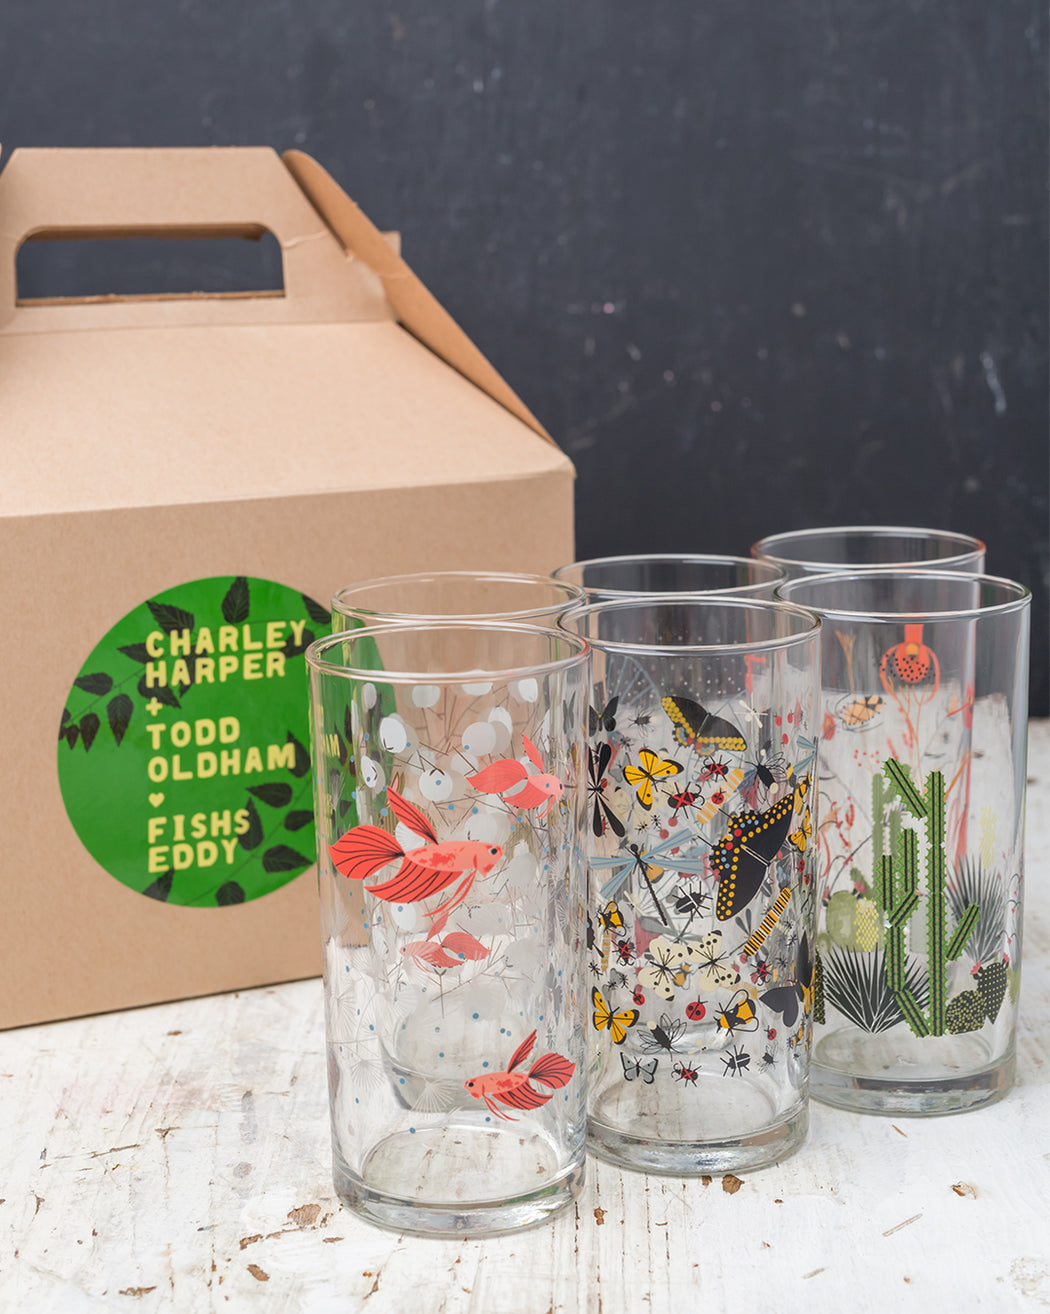 Harper + Oldham Wine Glasses Gift Box - Set of 6 - Fishs Eddy